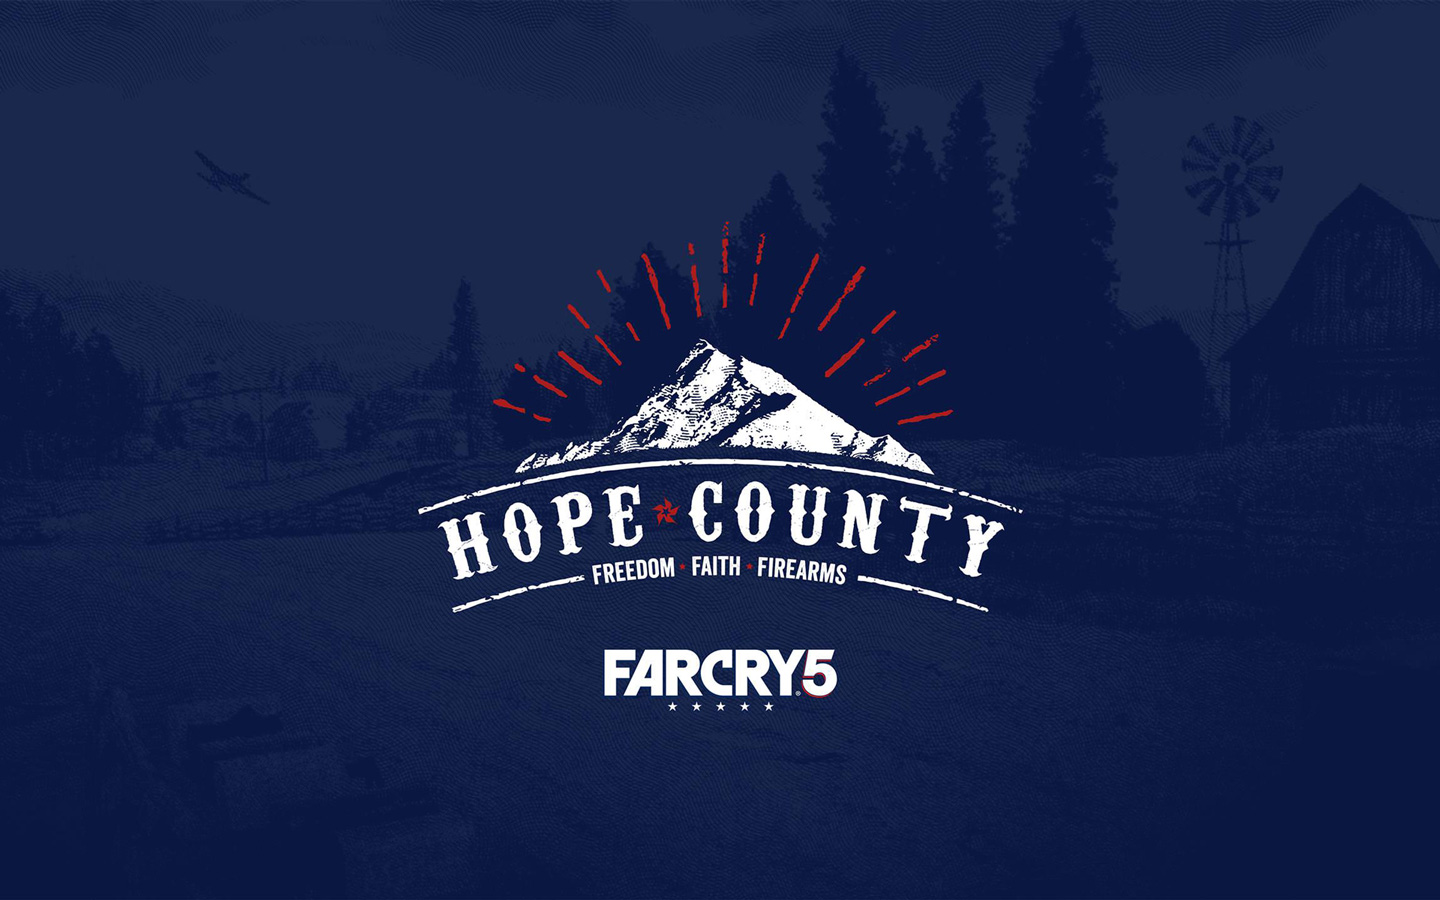 Free Far Cry 5 Wallpaper in 1440x900